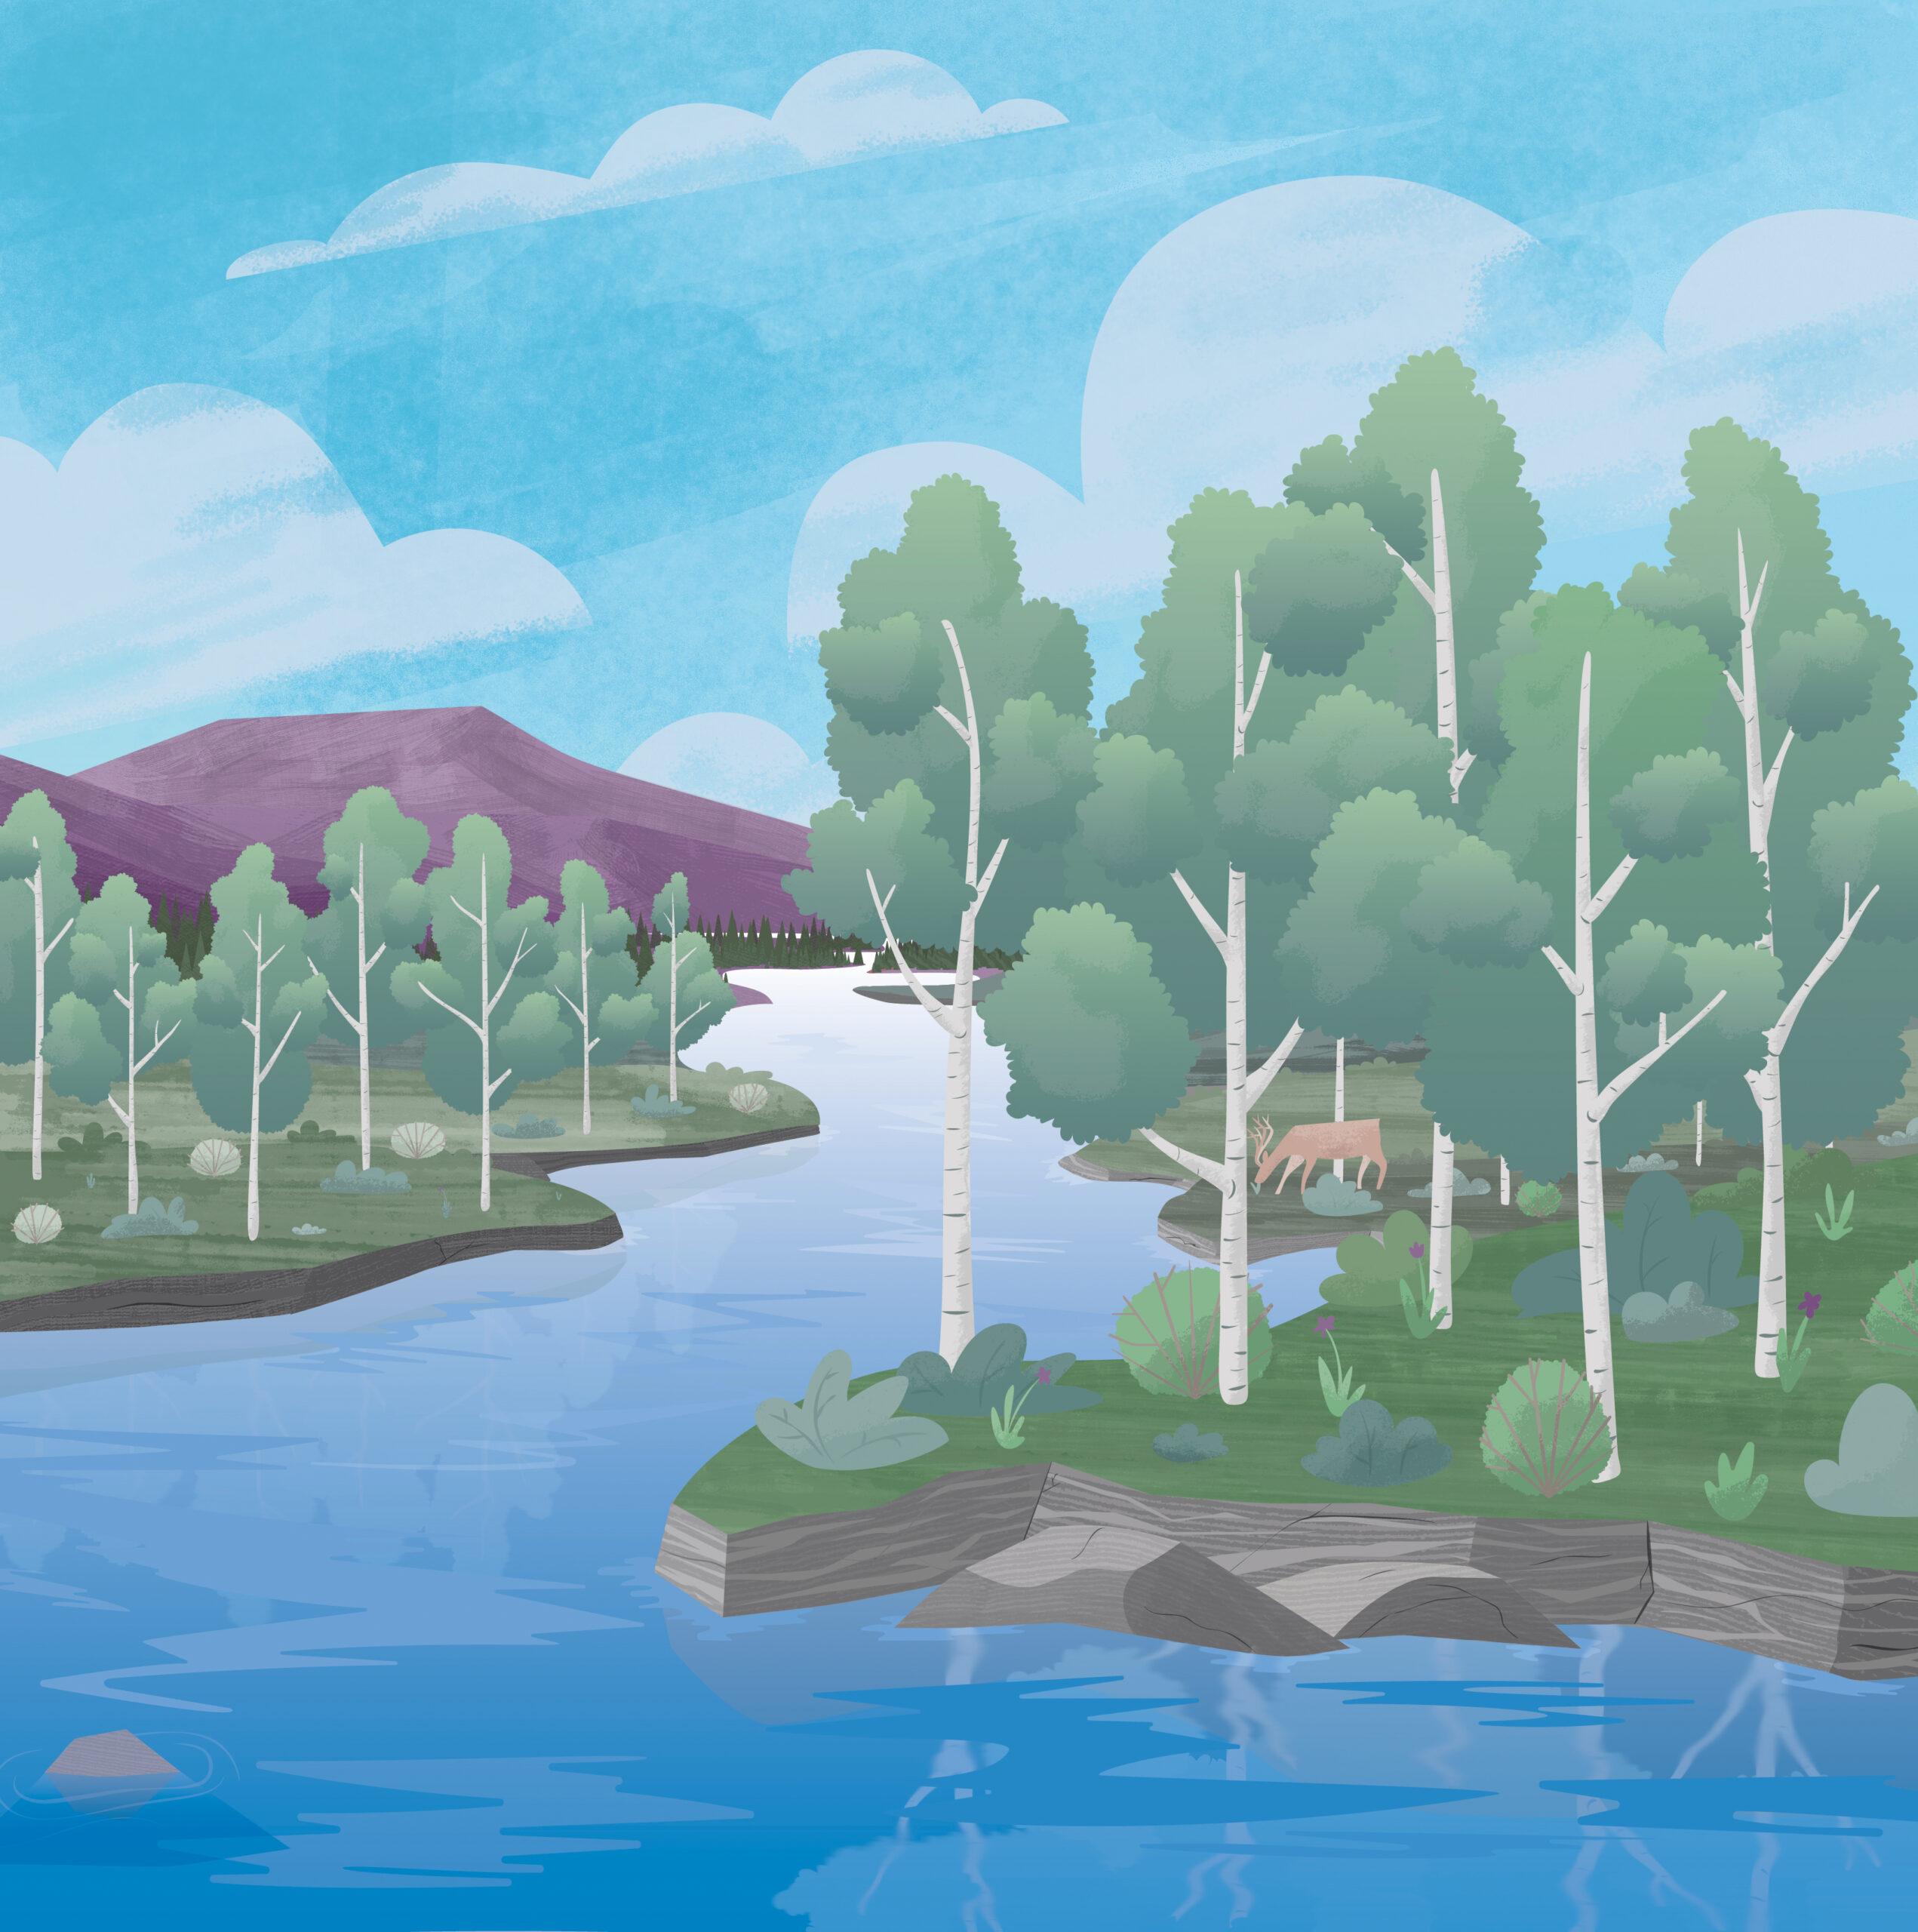 Illustration of a river in a forest. A blue sky. Mountains in the background. And a deer drinking from a river.